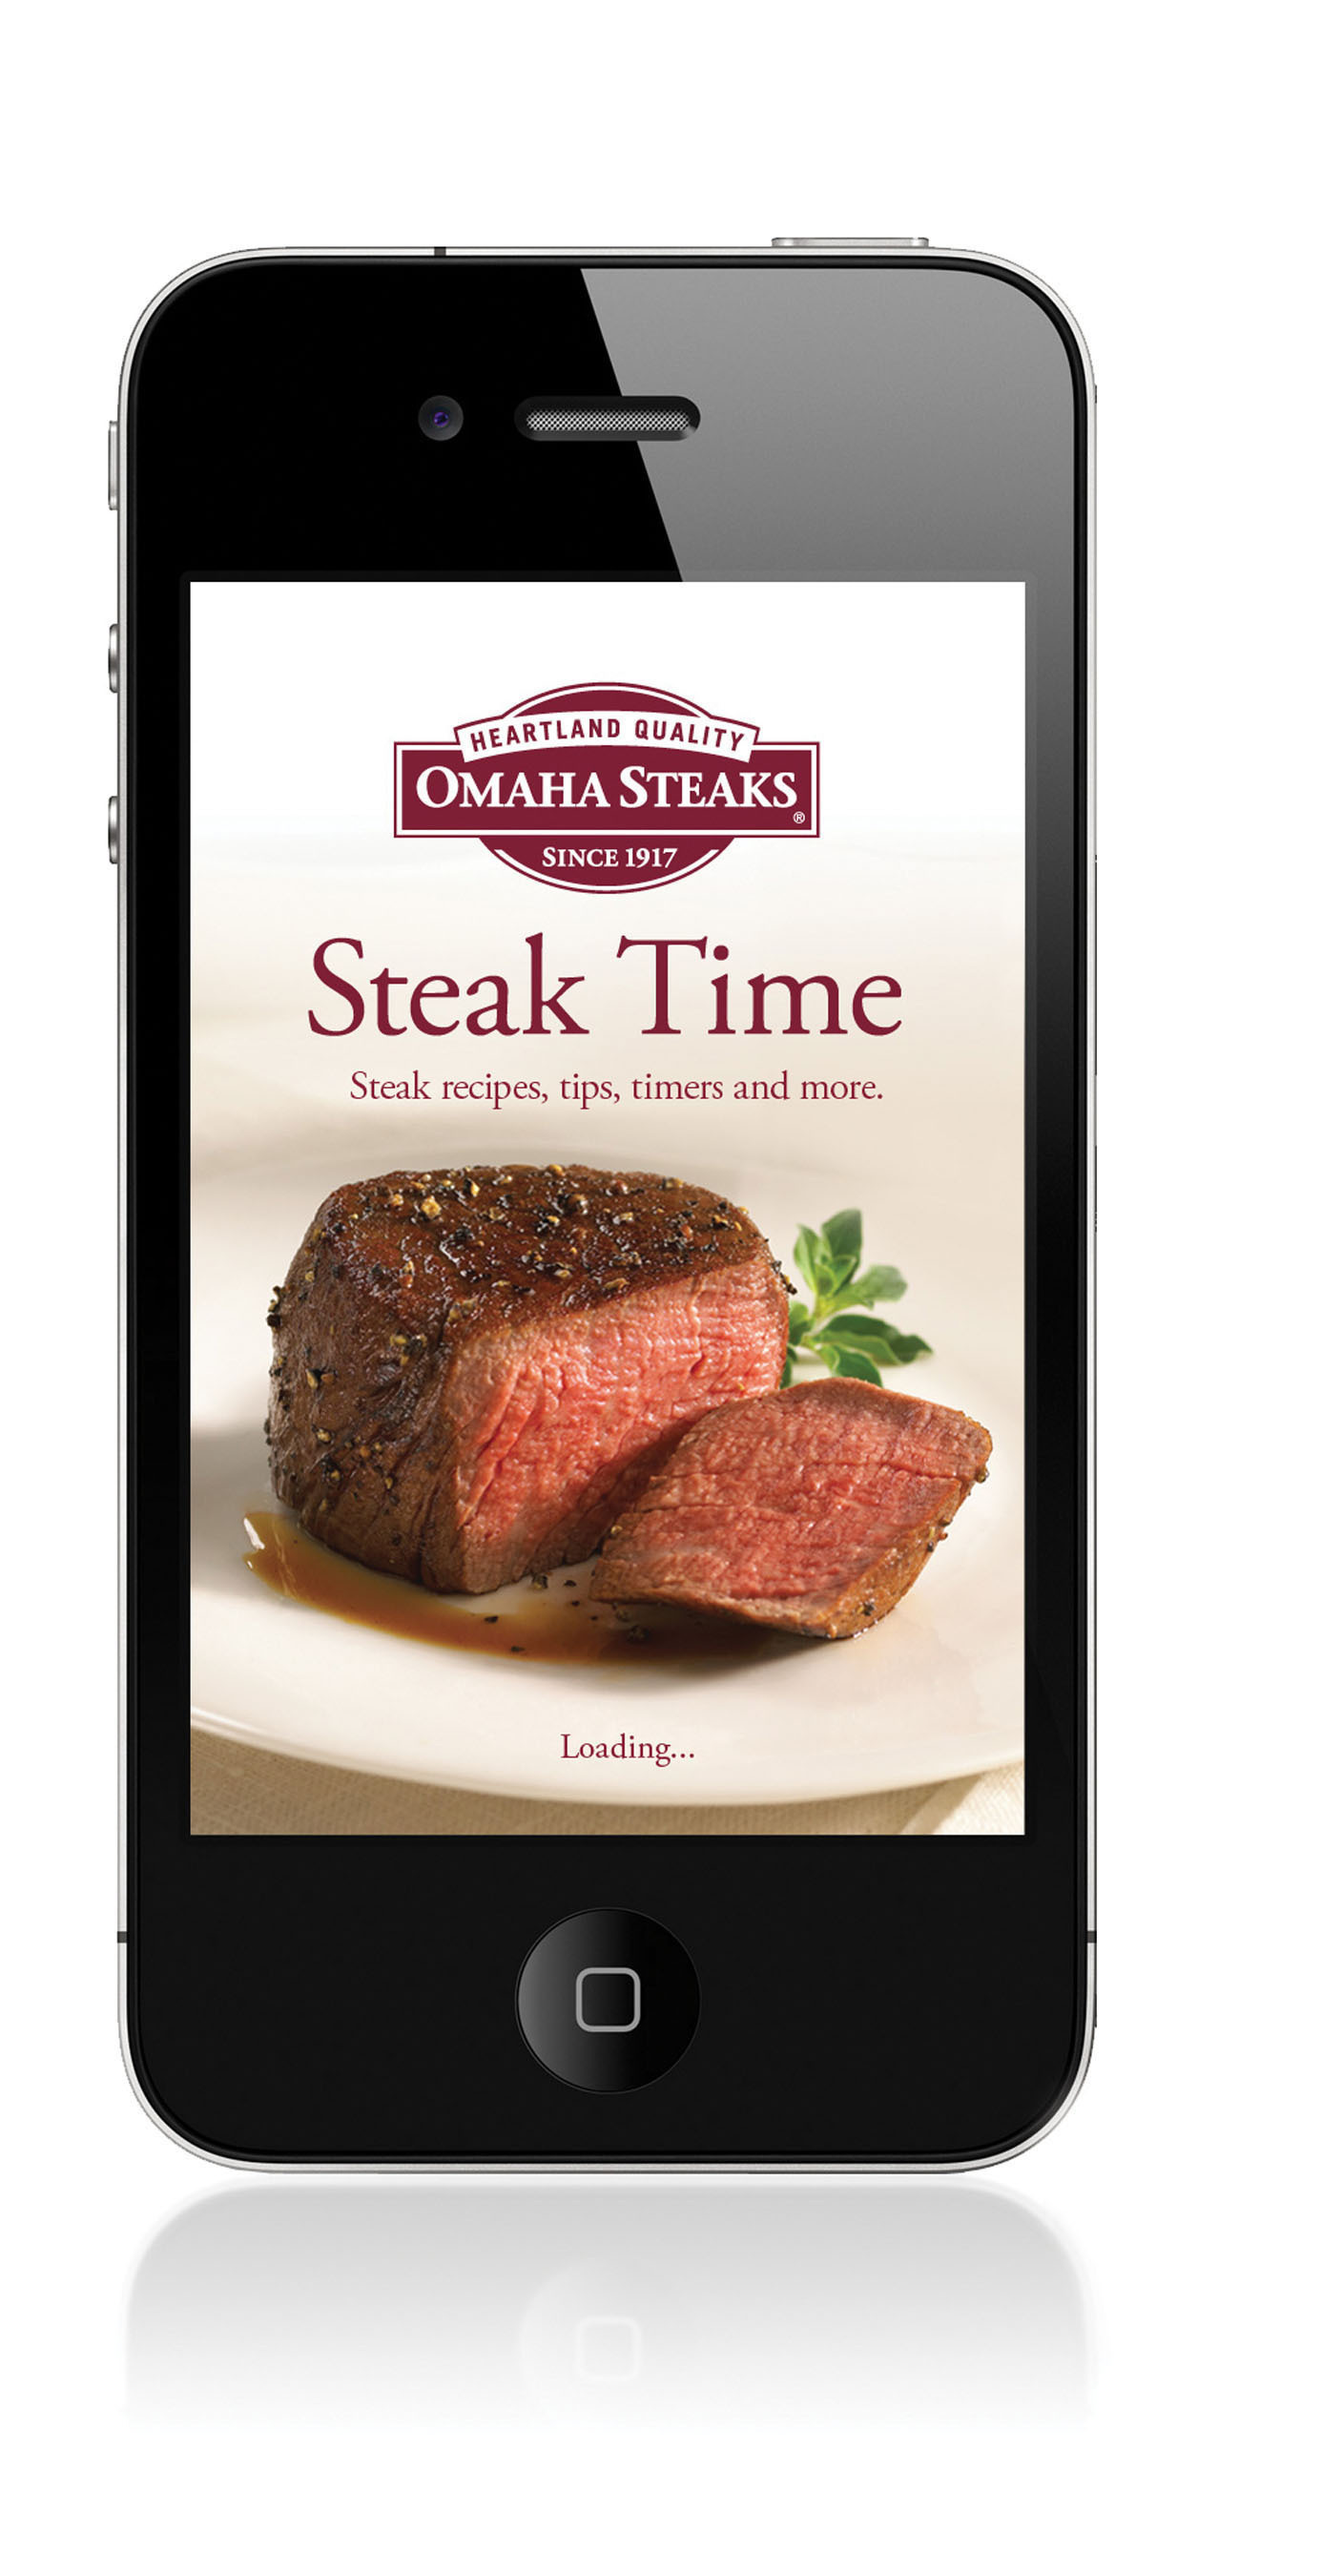 Omaha Steaks Steak Time App makes shopping for the perfect holiday gift easy and convenient. Users can browse and purchase gifts and access many innovative features perfect for holiday entertaining.  (PRNewsFoto/Omaha Steaks)